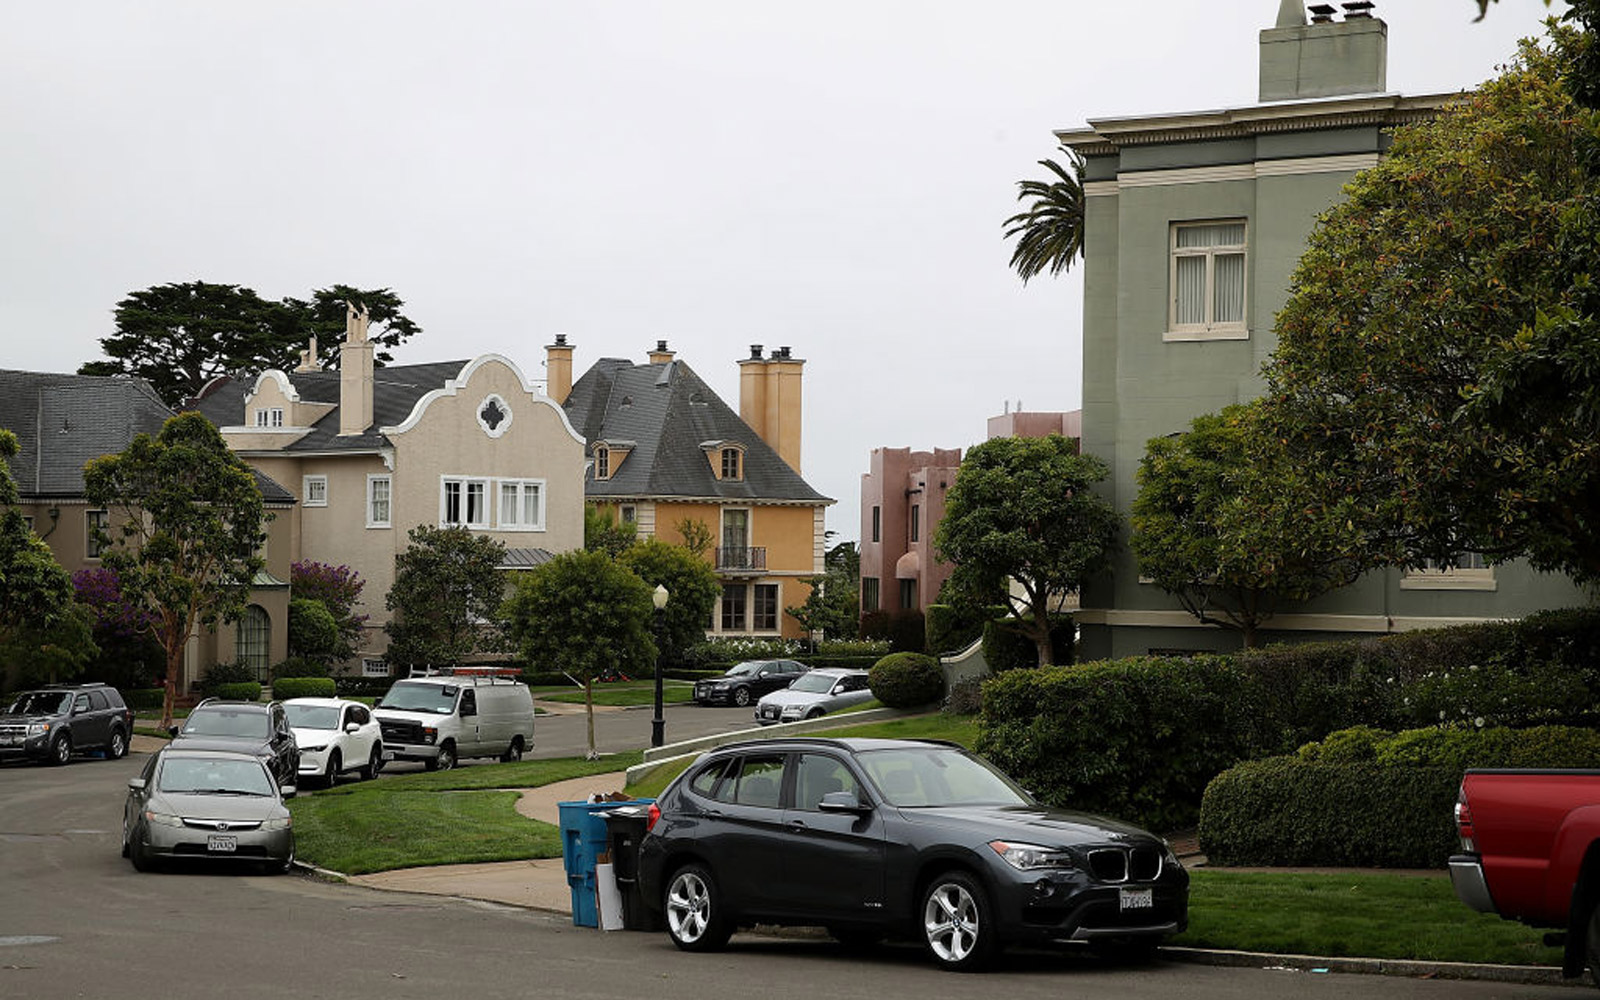 Residents in San Francisco's Presidio Neighborhood Finally Won Their Street Back